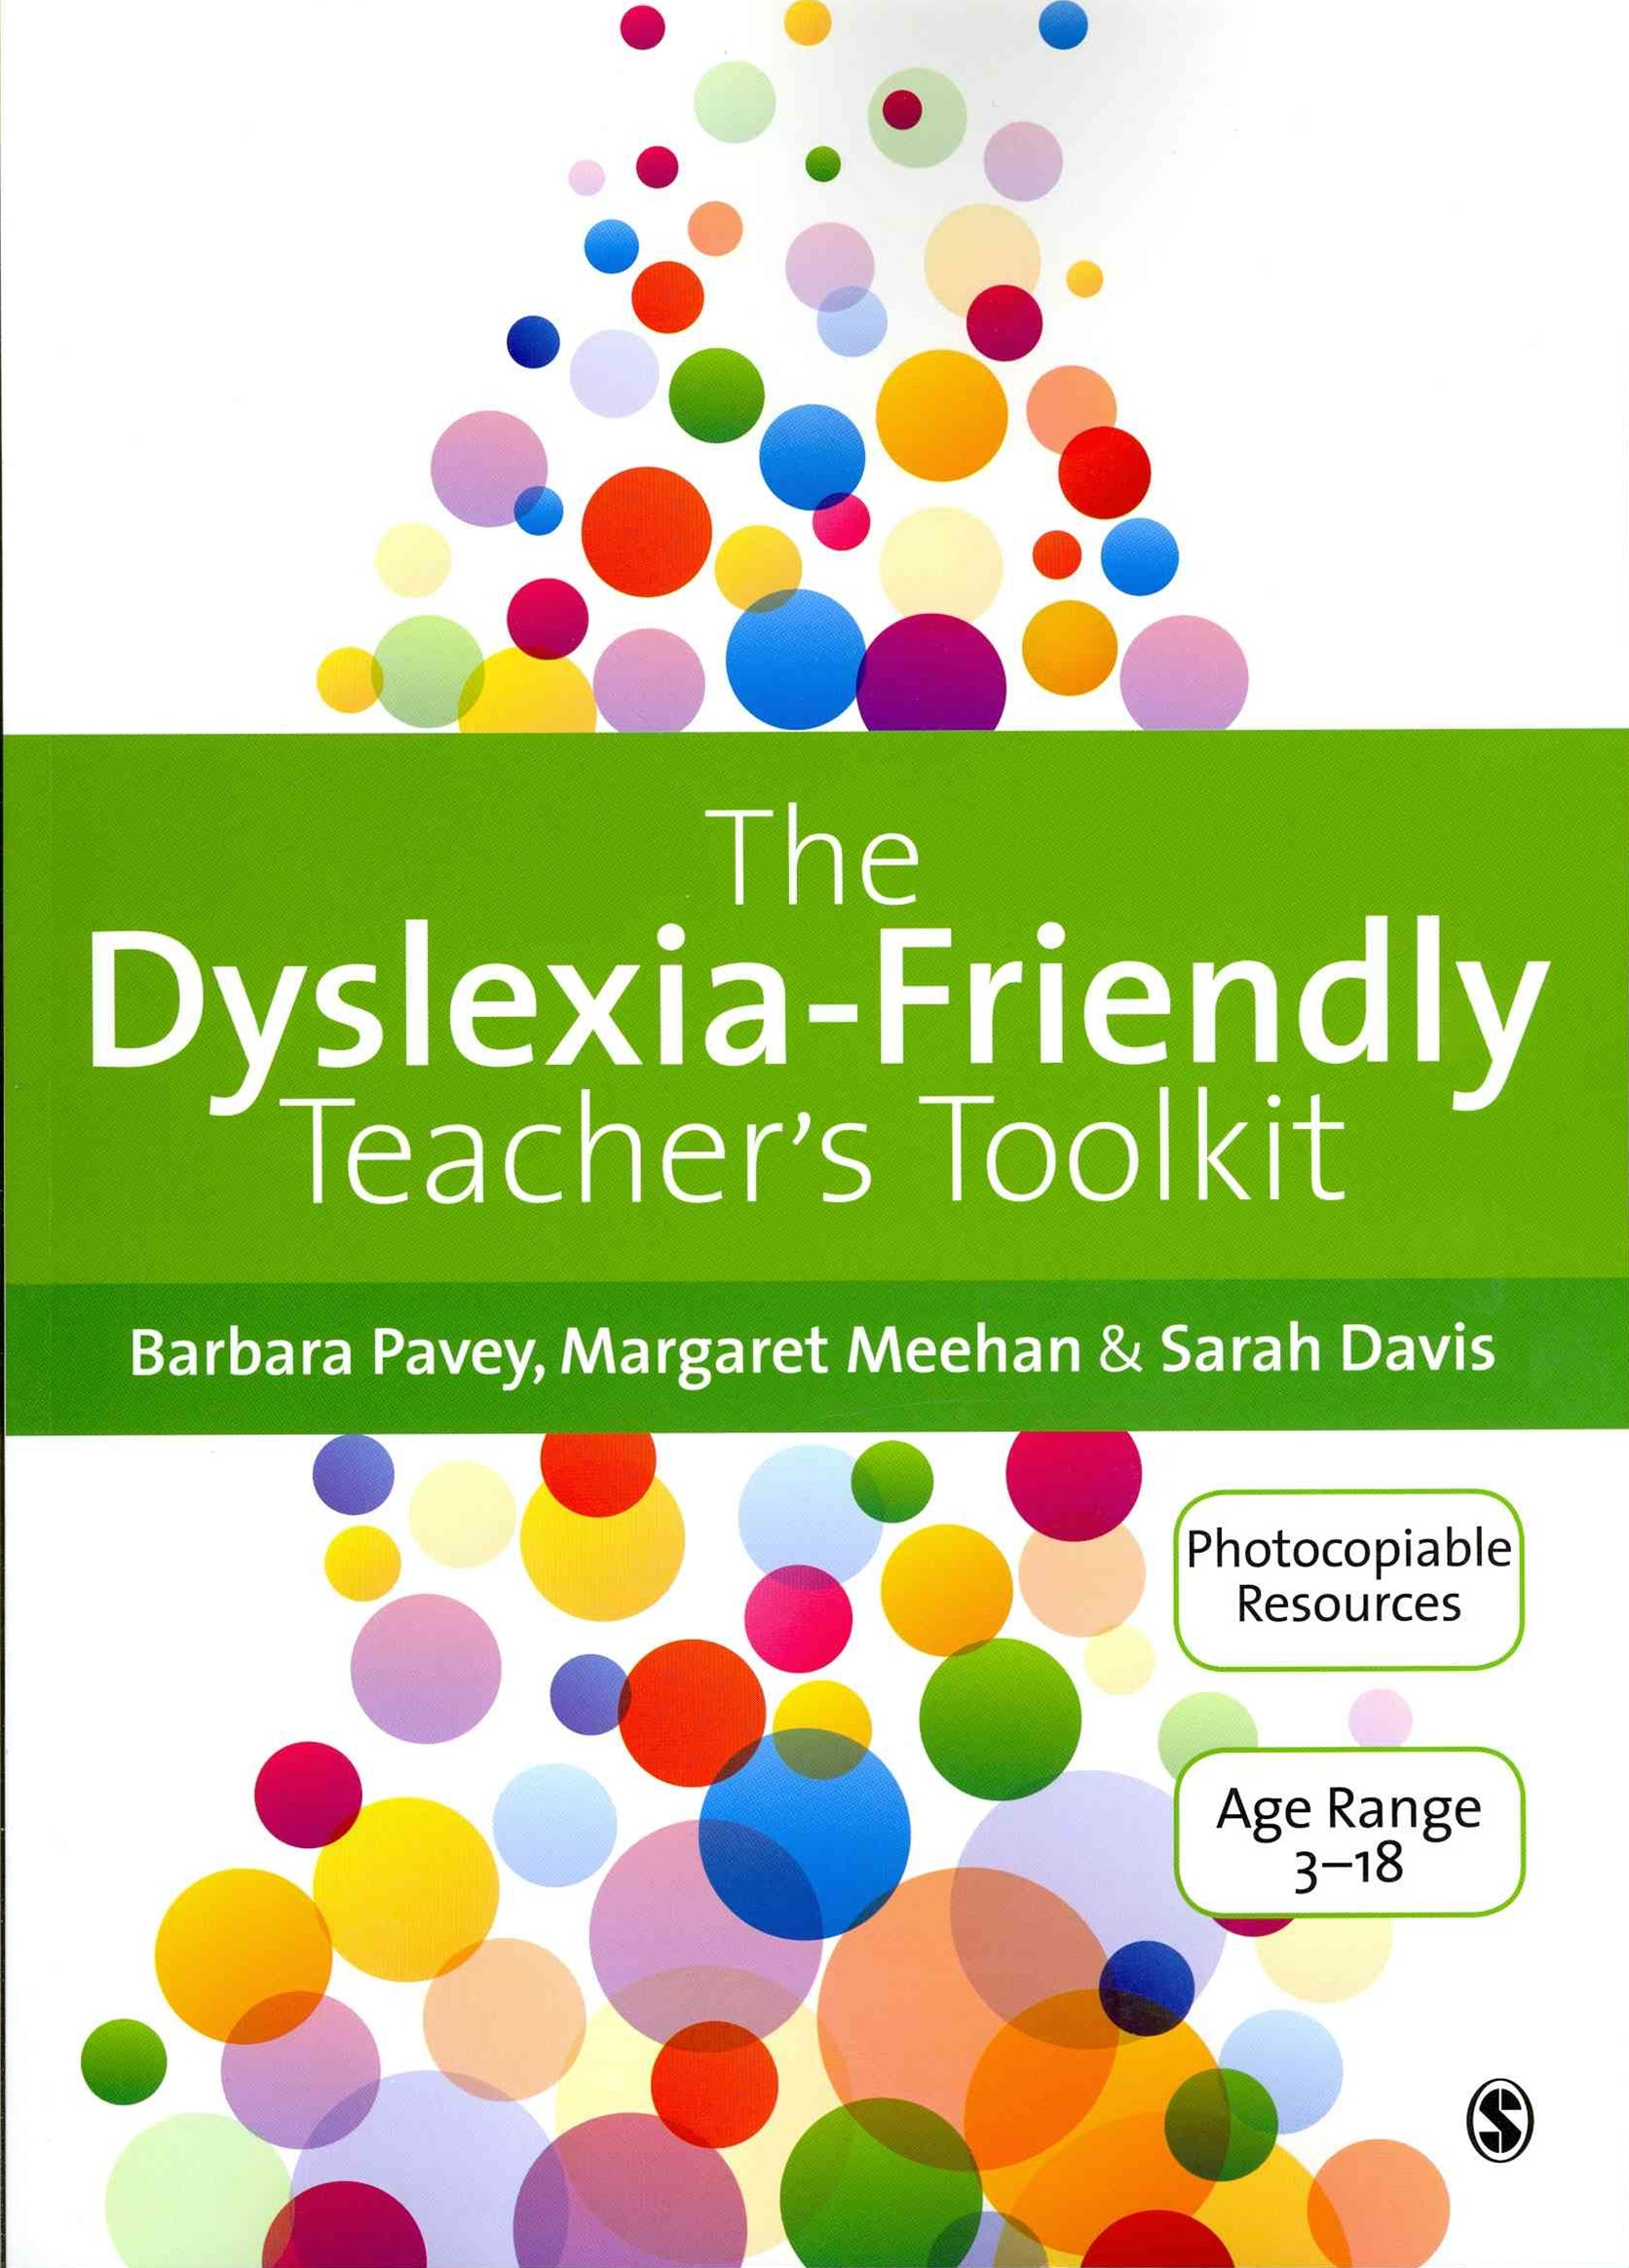 Dyslexia-Friendly Teacher's Toolkit